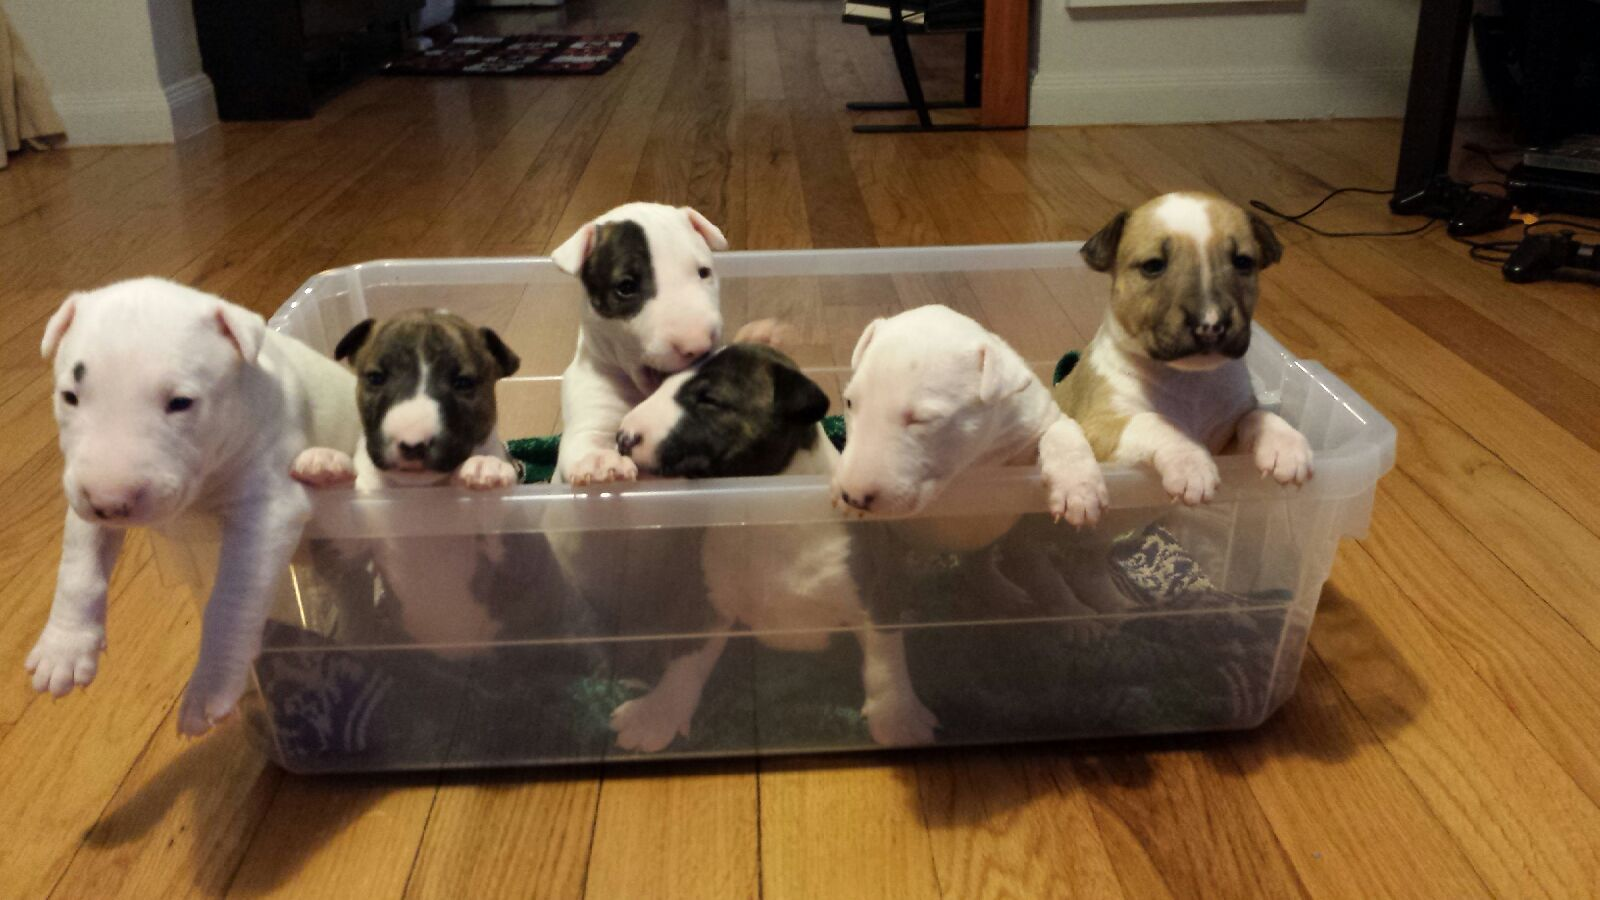 Our puppies chillen in the baby bucket :) .... Check out our posting on next day pets. Com :) they're for sale and will be ready to go by the end of this month !